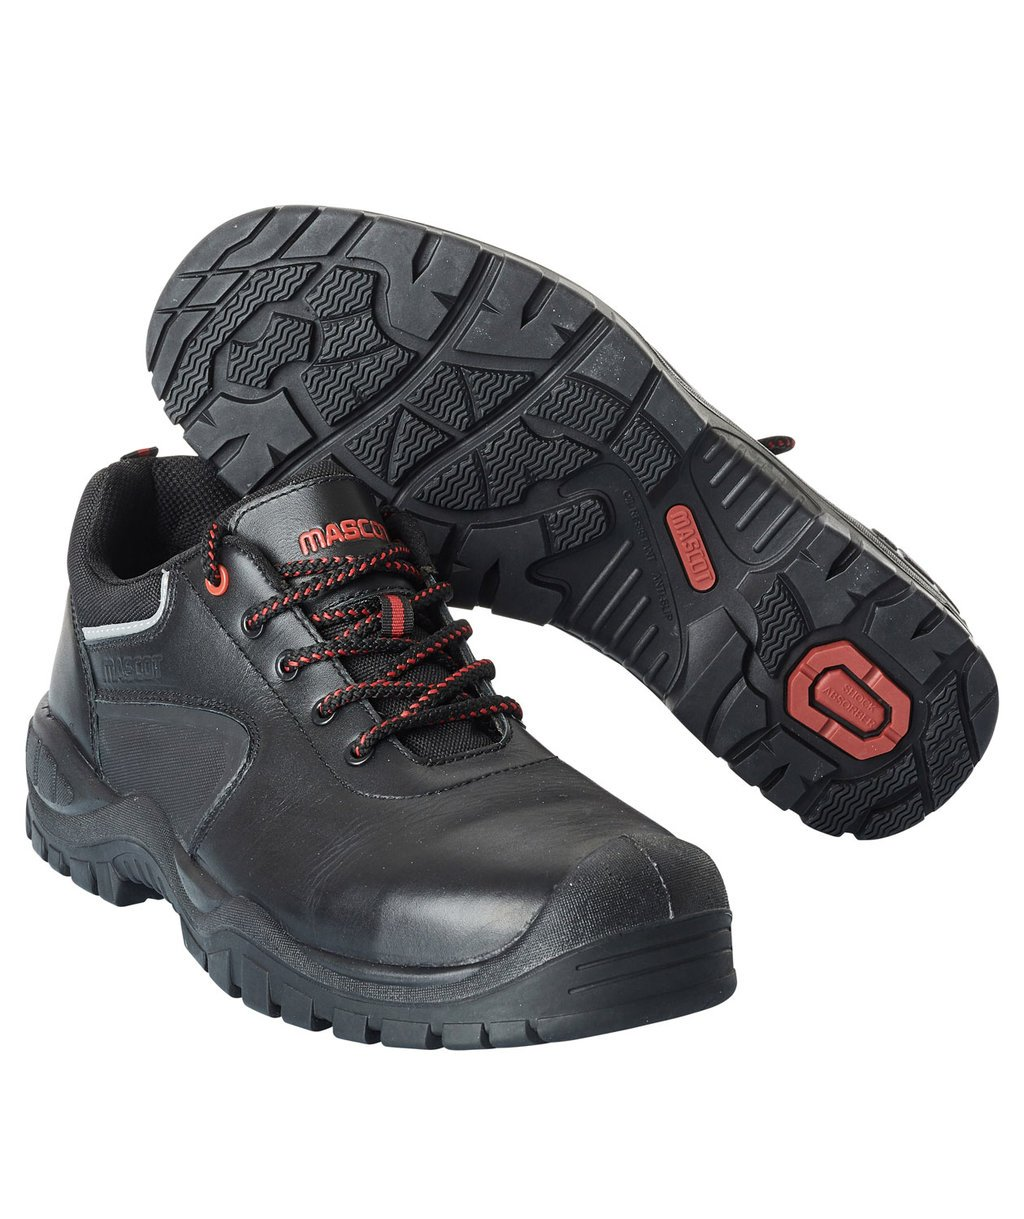 Mascot Industry safety shoes S3, Black